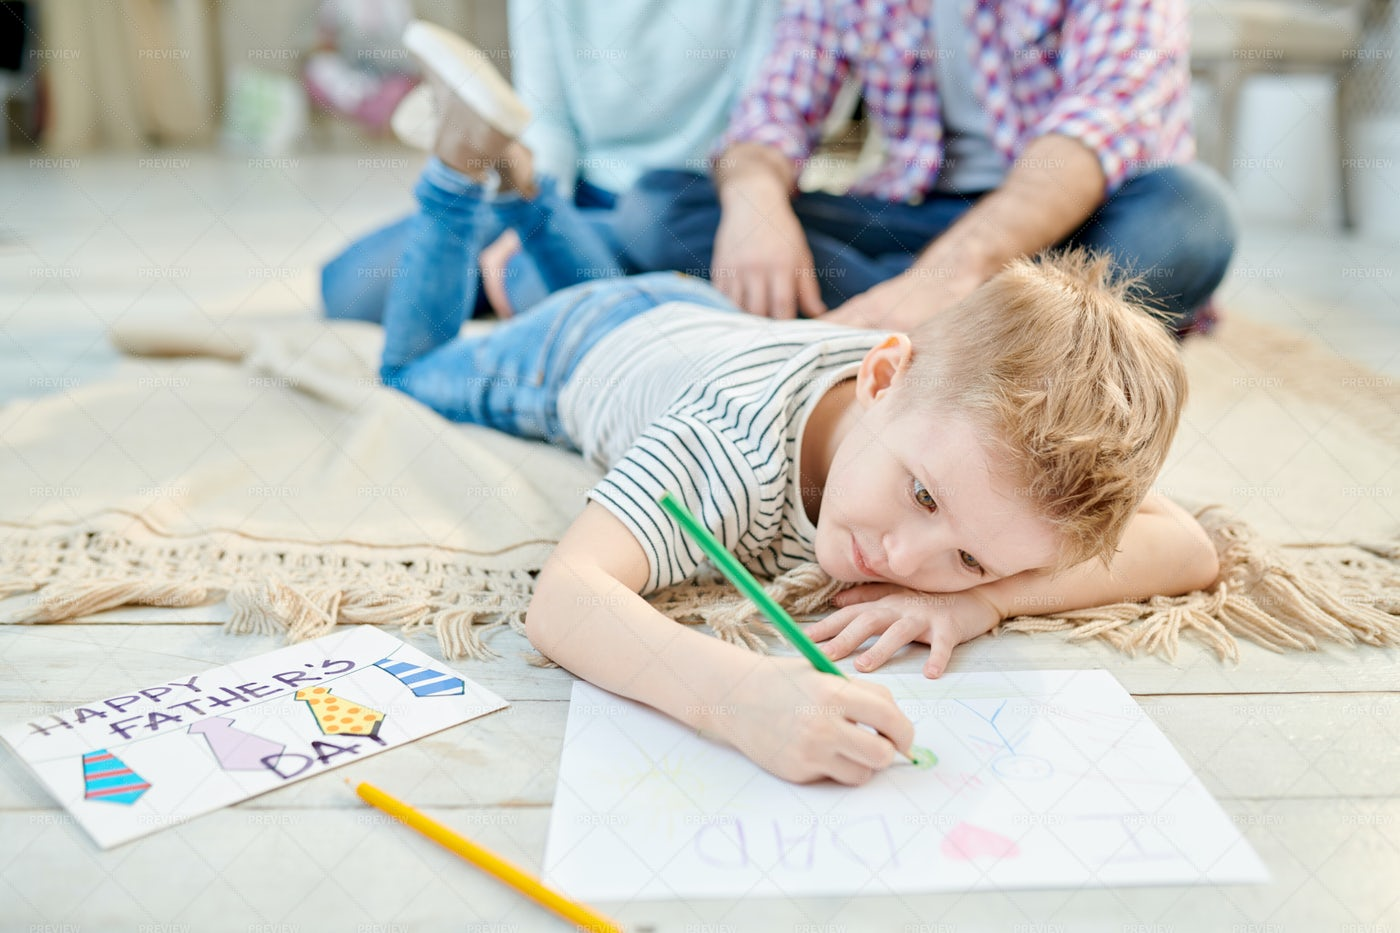 Little Boy Drawing Picture  For...: Stock Photos